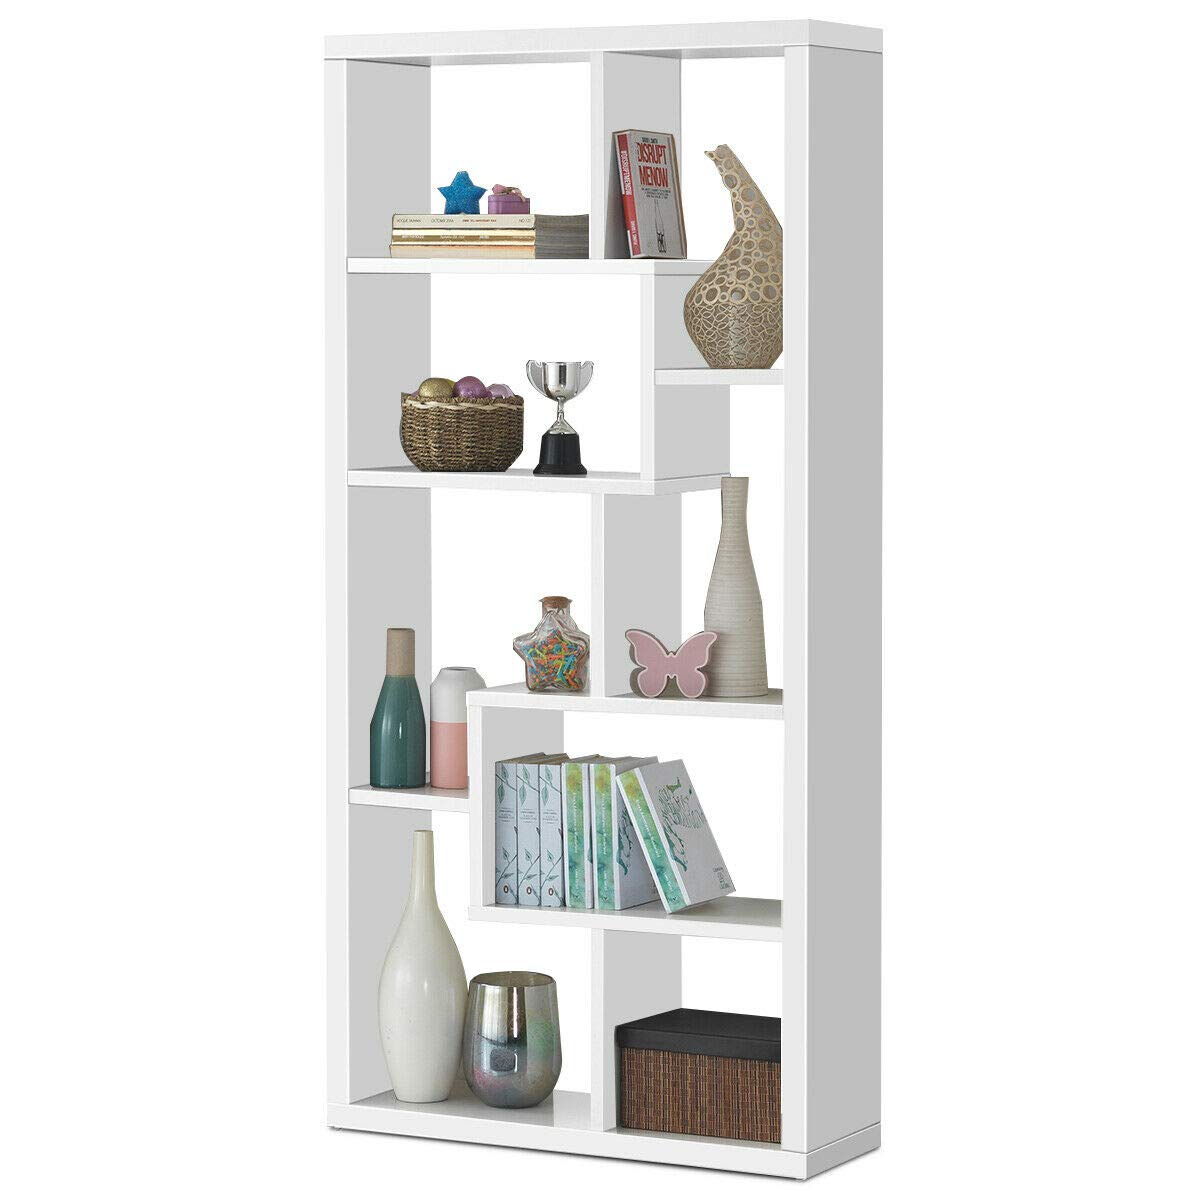 Giantex 8 Cubes Bookcase, Ladder Shelf Freestanding Corner Storage Bookshelf, 4-Layer Organizer Rack Display Cabinet White